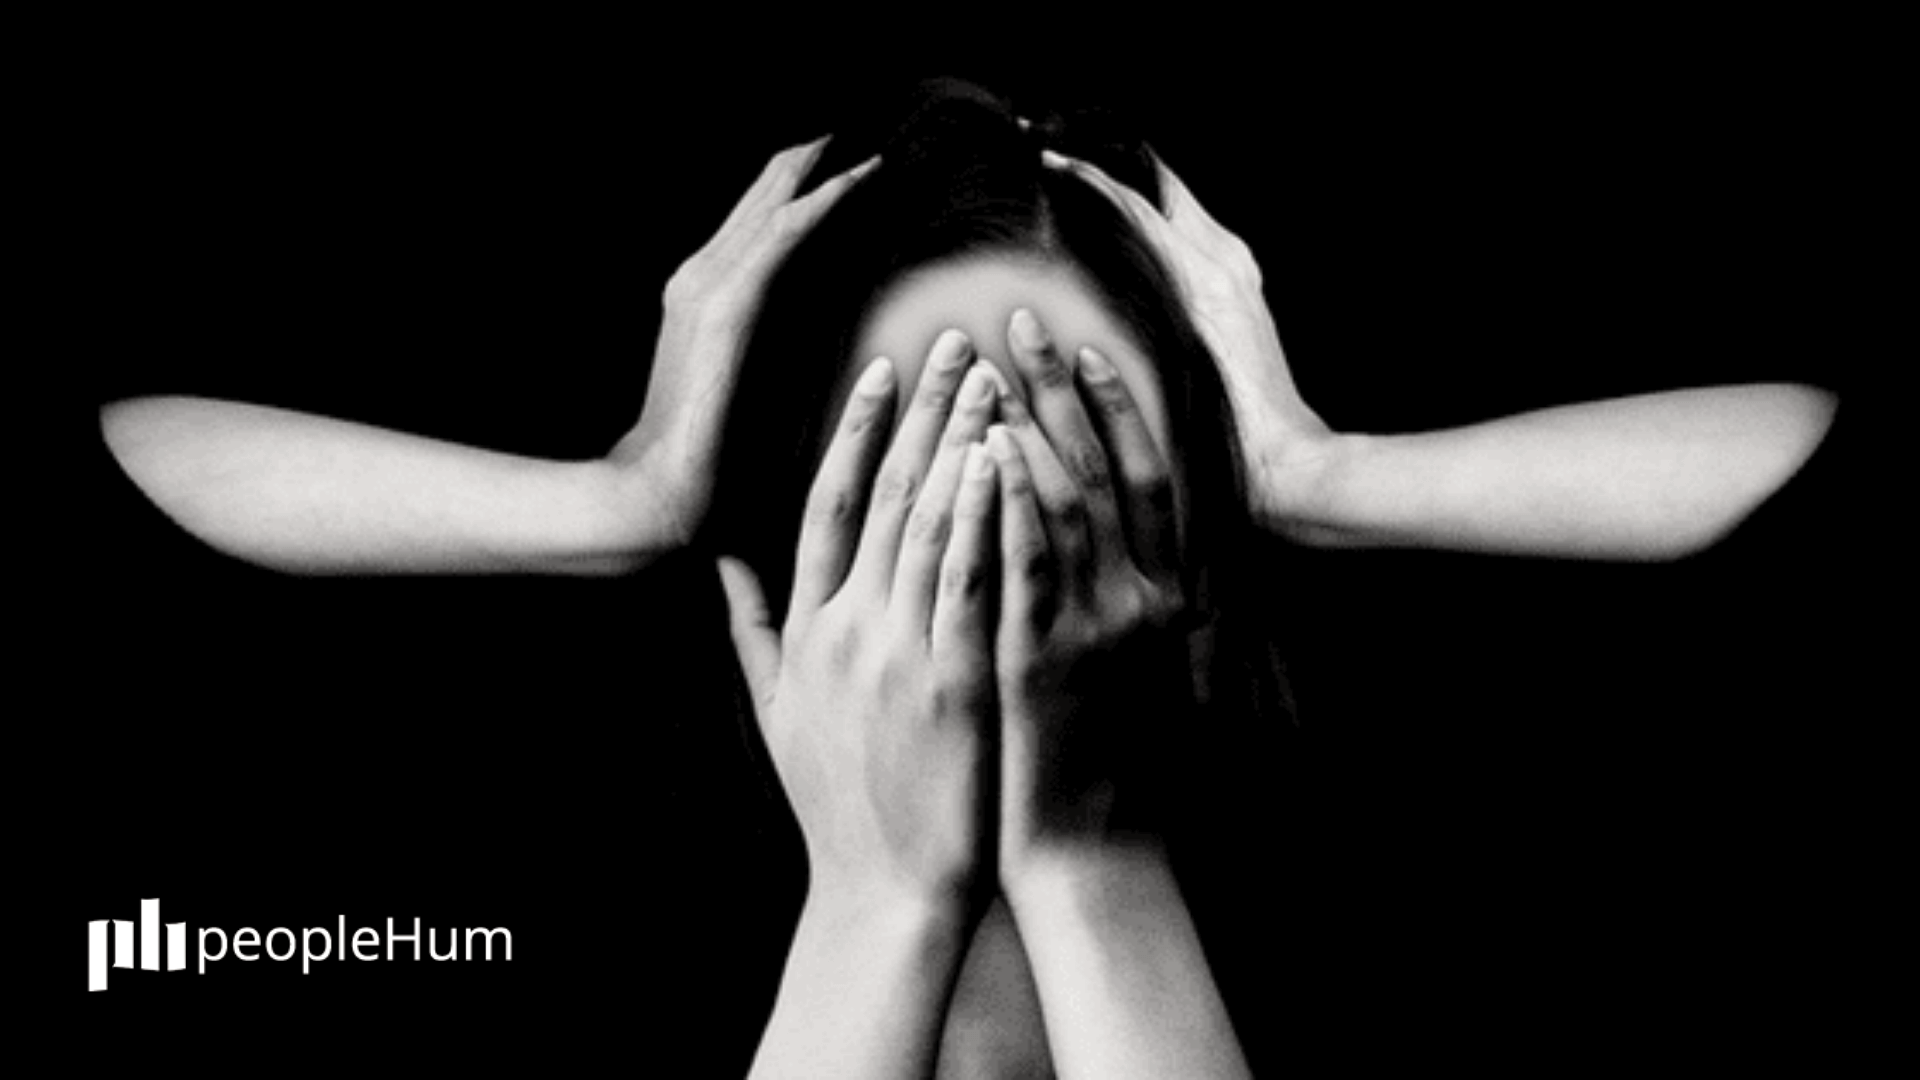 The role of HR in workplace bullying